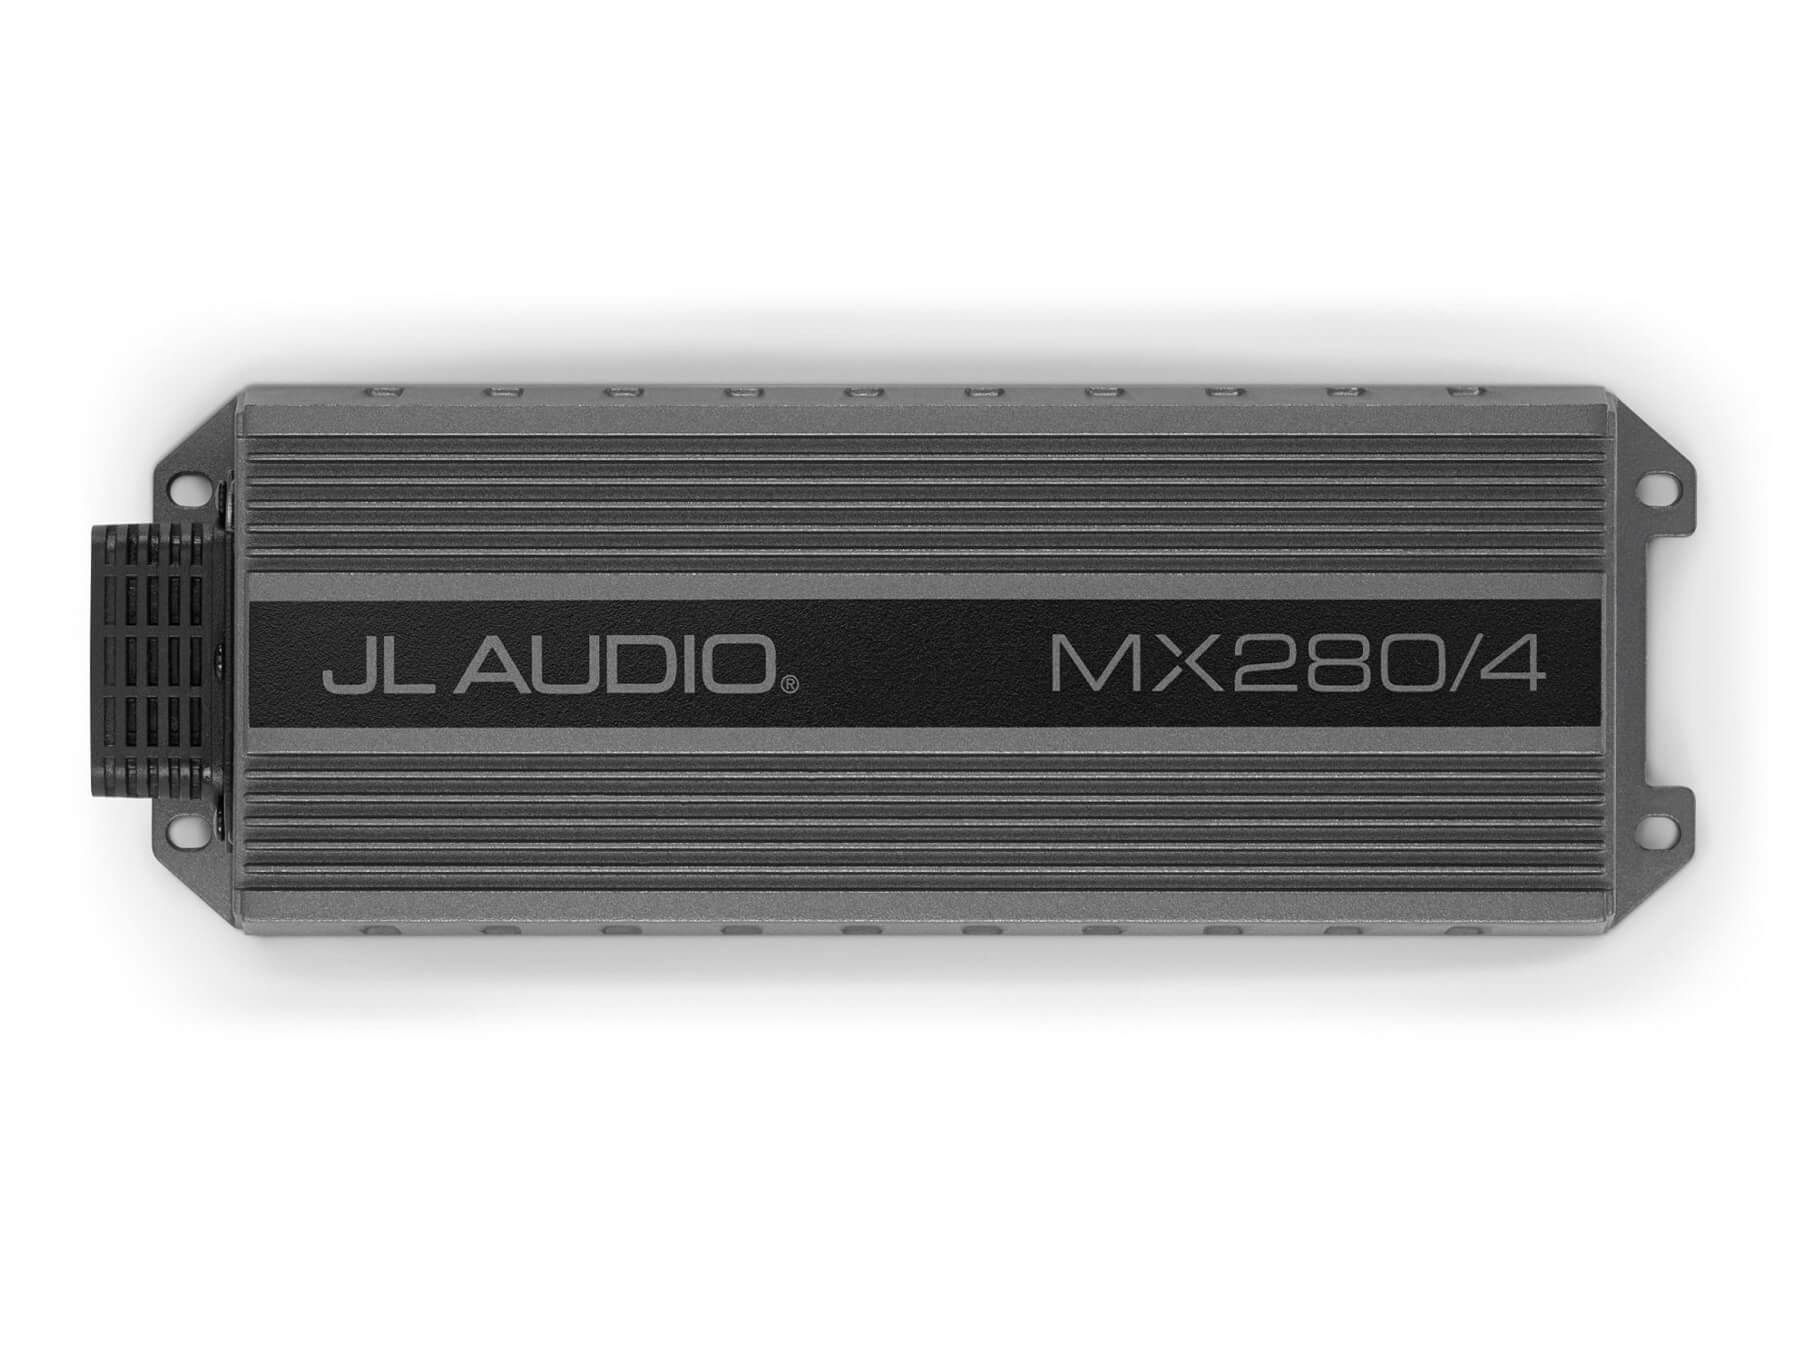 JL Audio MX280/4 - 4 Channel - Class D Amplifier